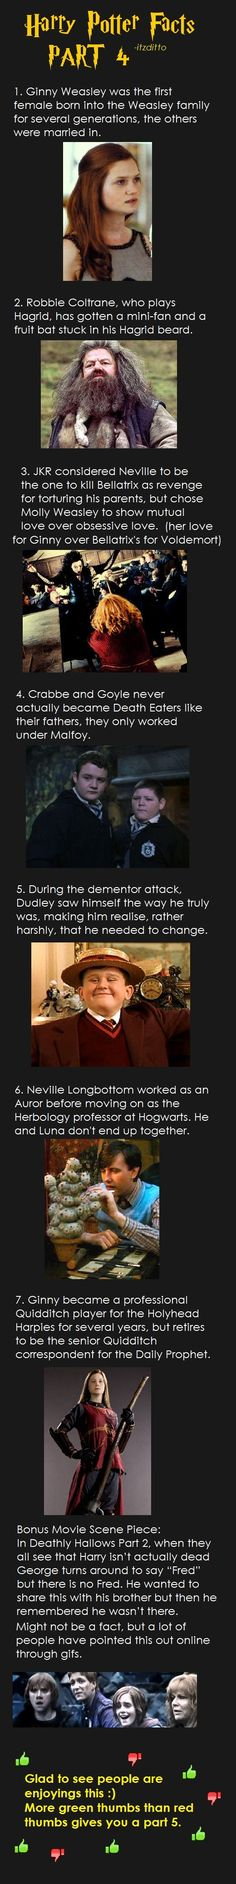 Harry Potter Facts Pt4